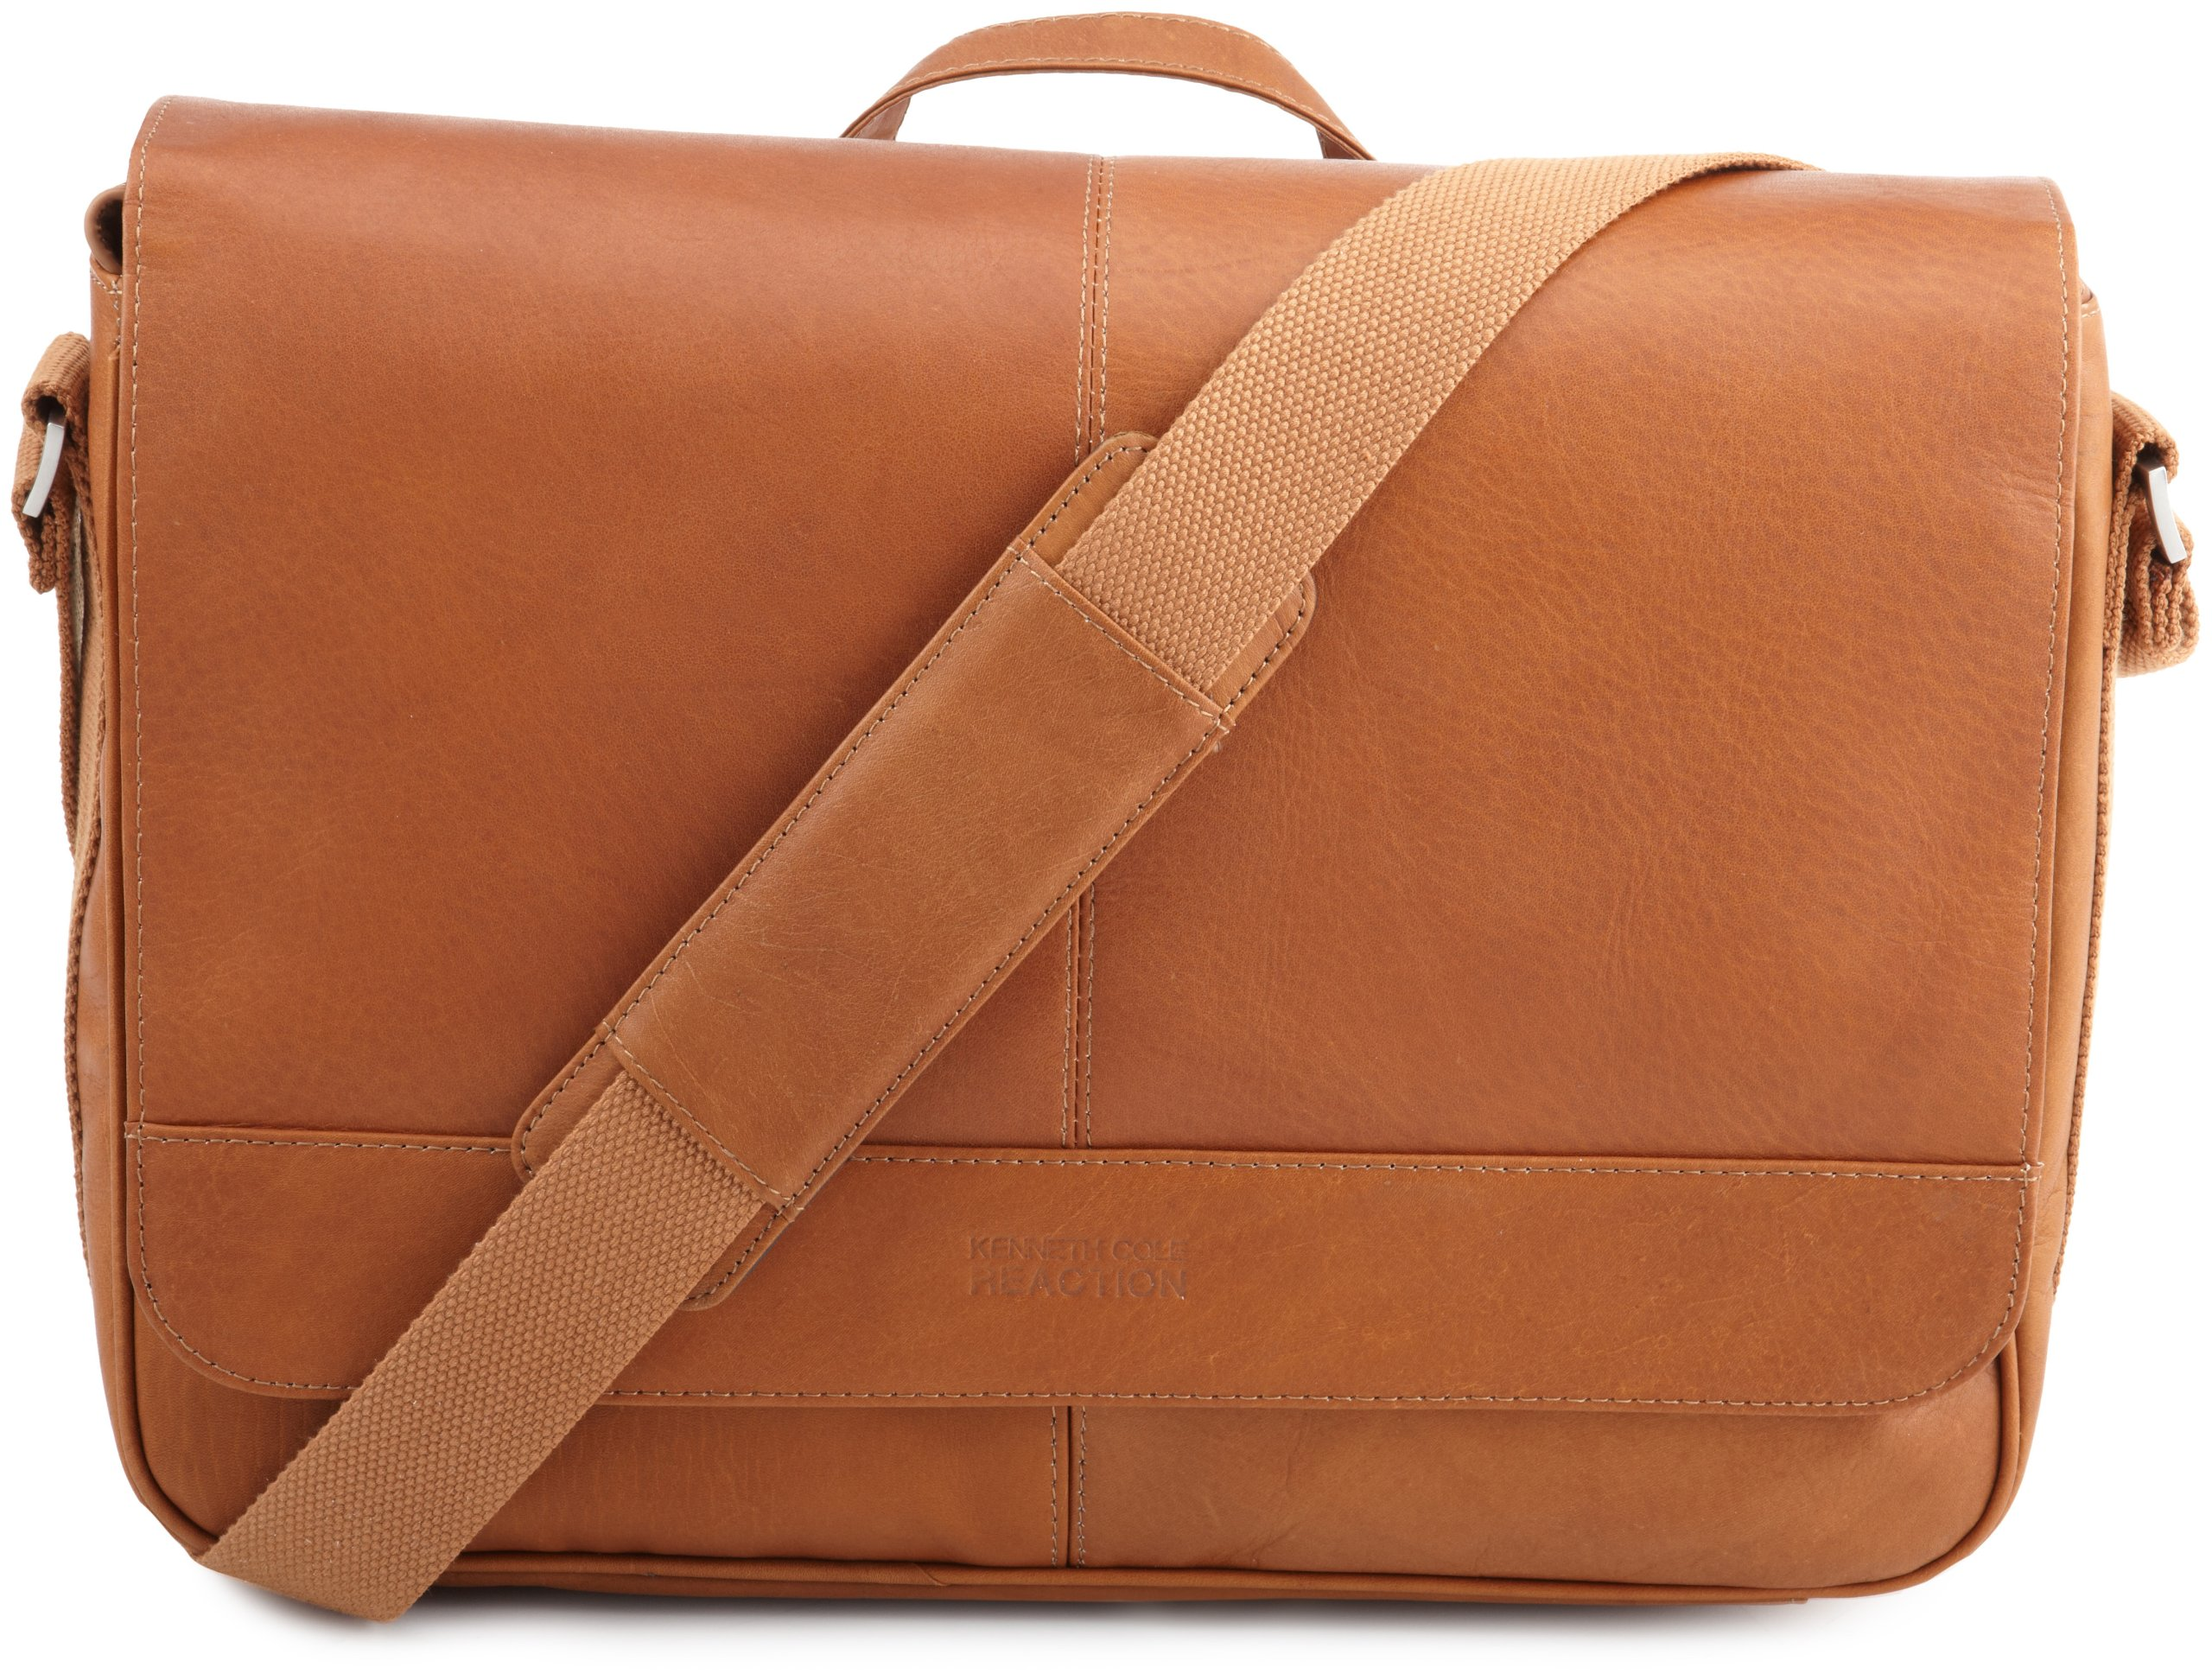 Kenneth Cole Risky Business Messenger Bag, Tan, One Size